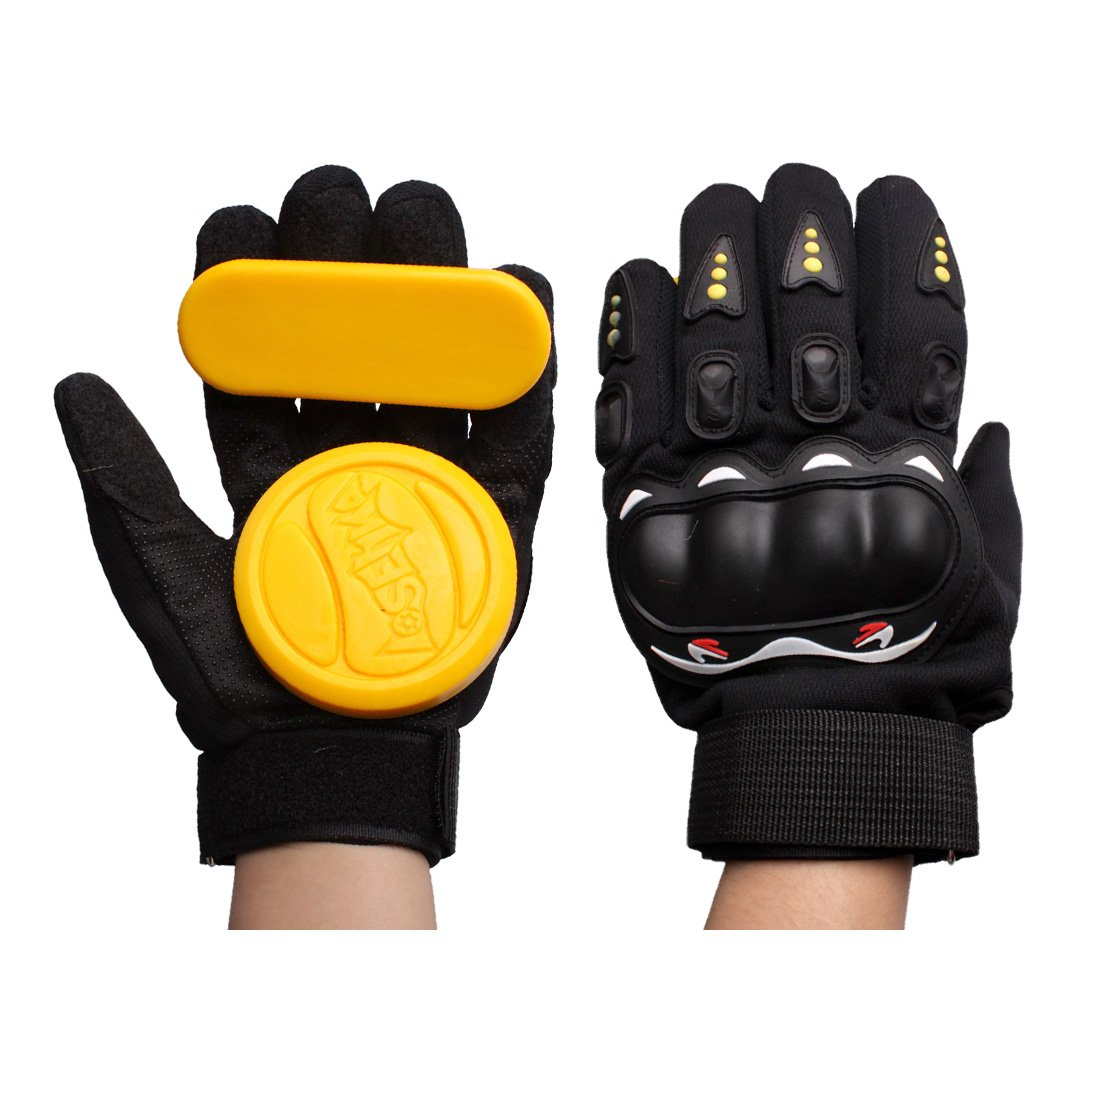 Andux Land Skateboard Slider Slide Glove Yellow HBST-05 by Andux